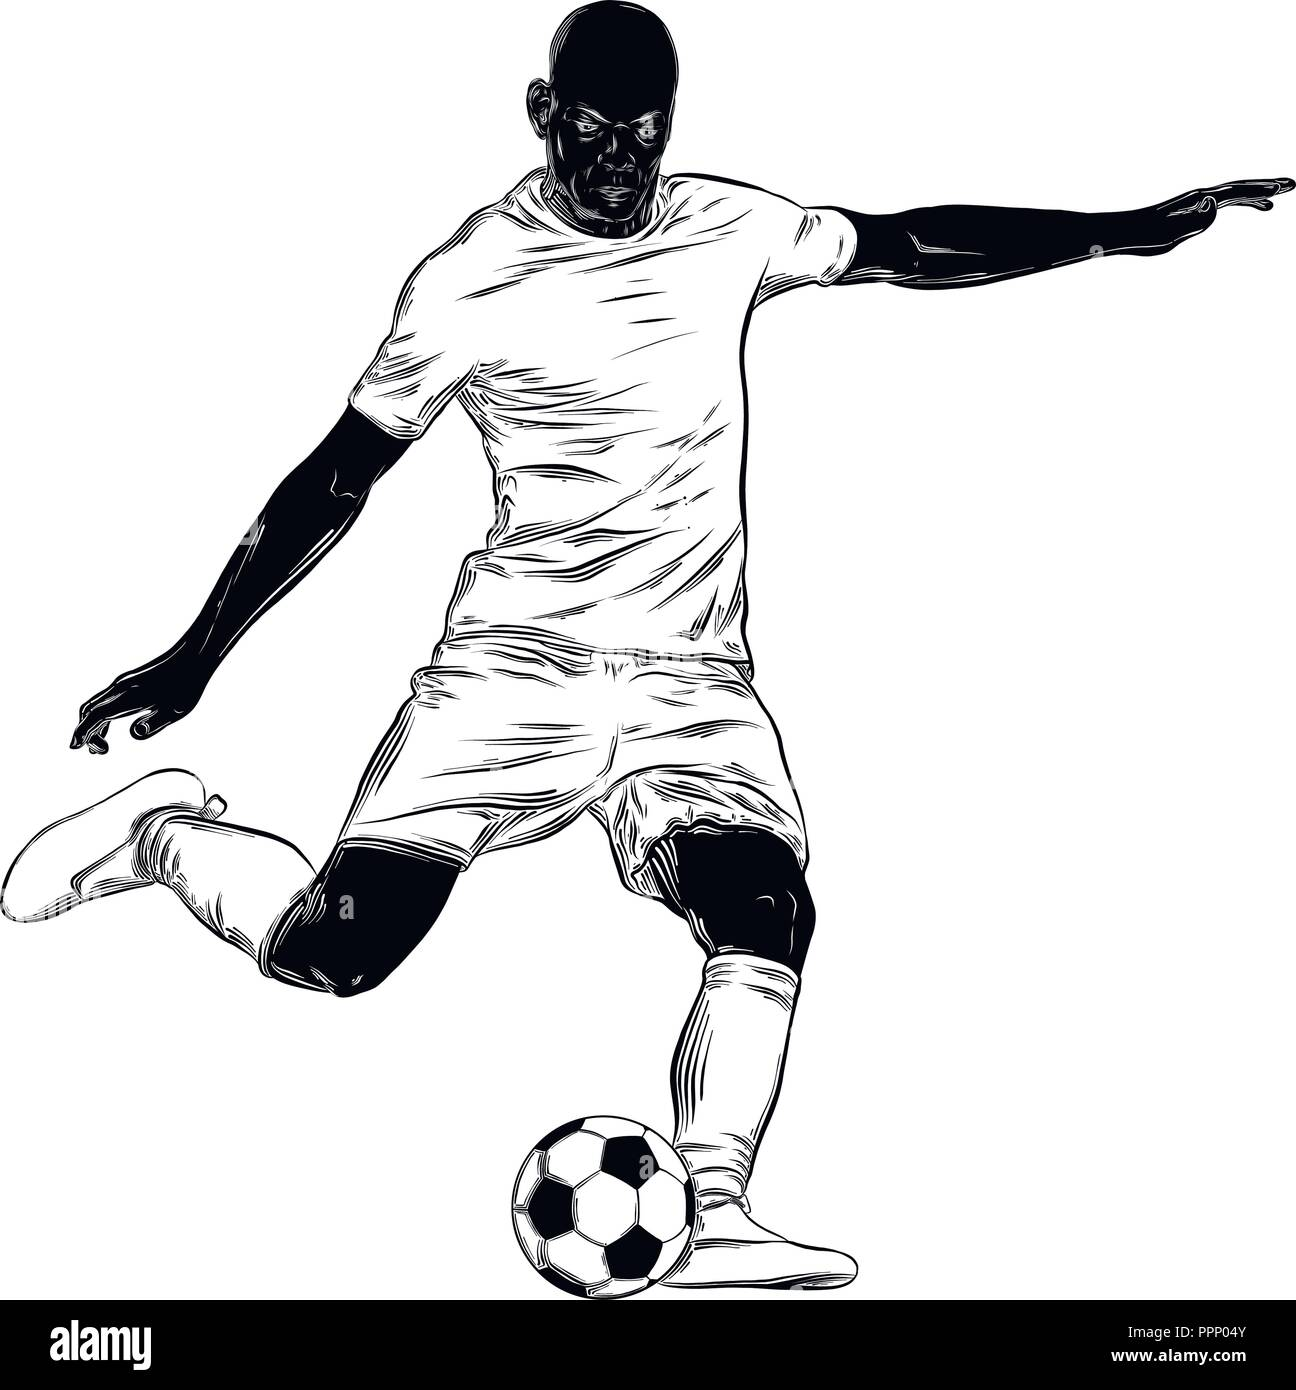 Hand drawn sketch of footballer in black isolated on white background detailed vintage style drawing illustration for posters and print